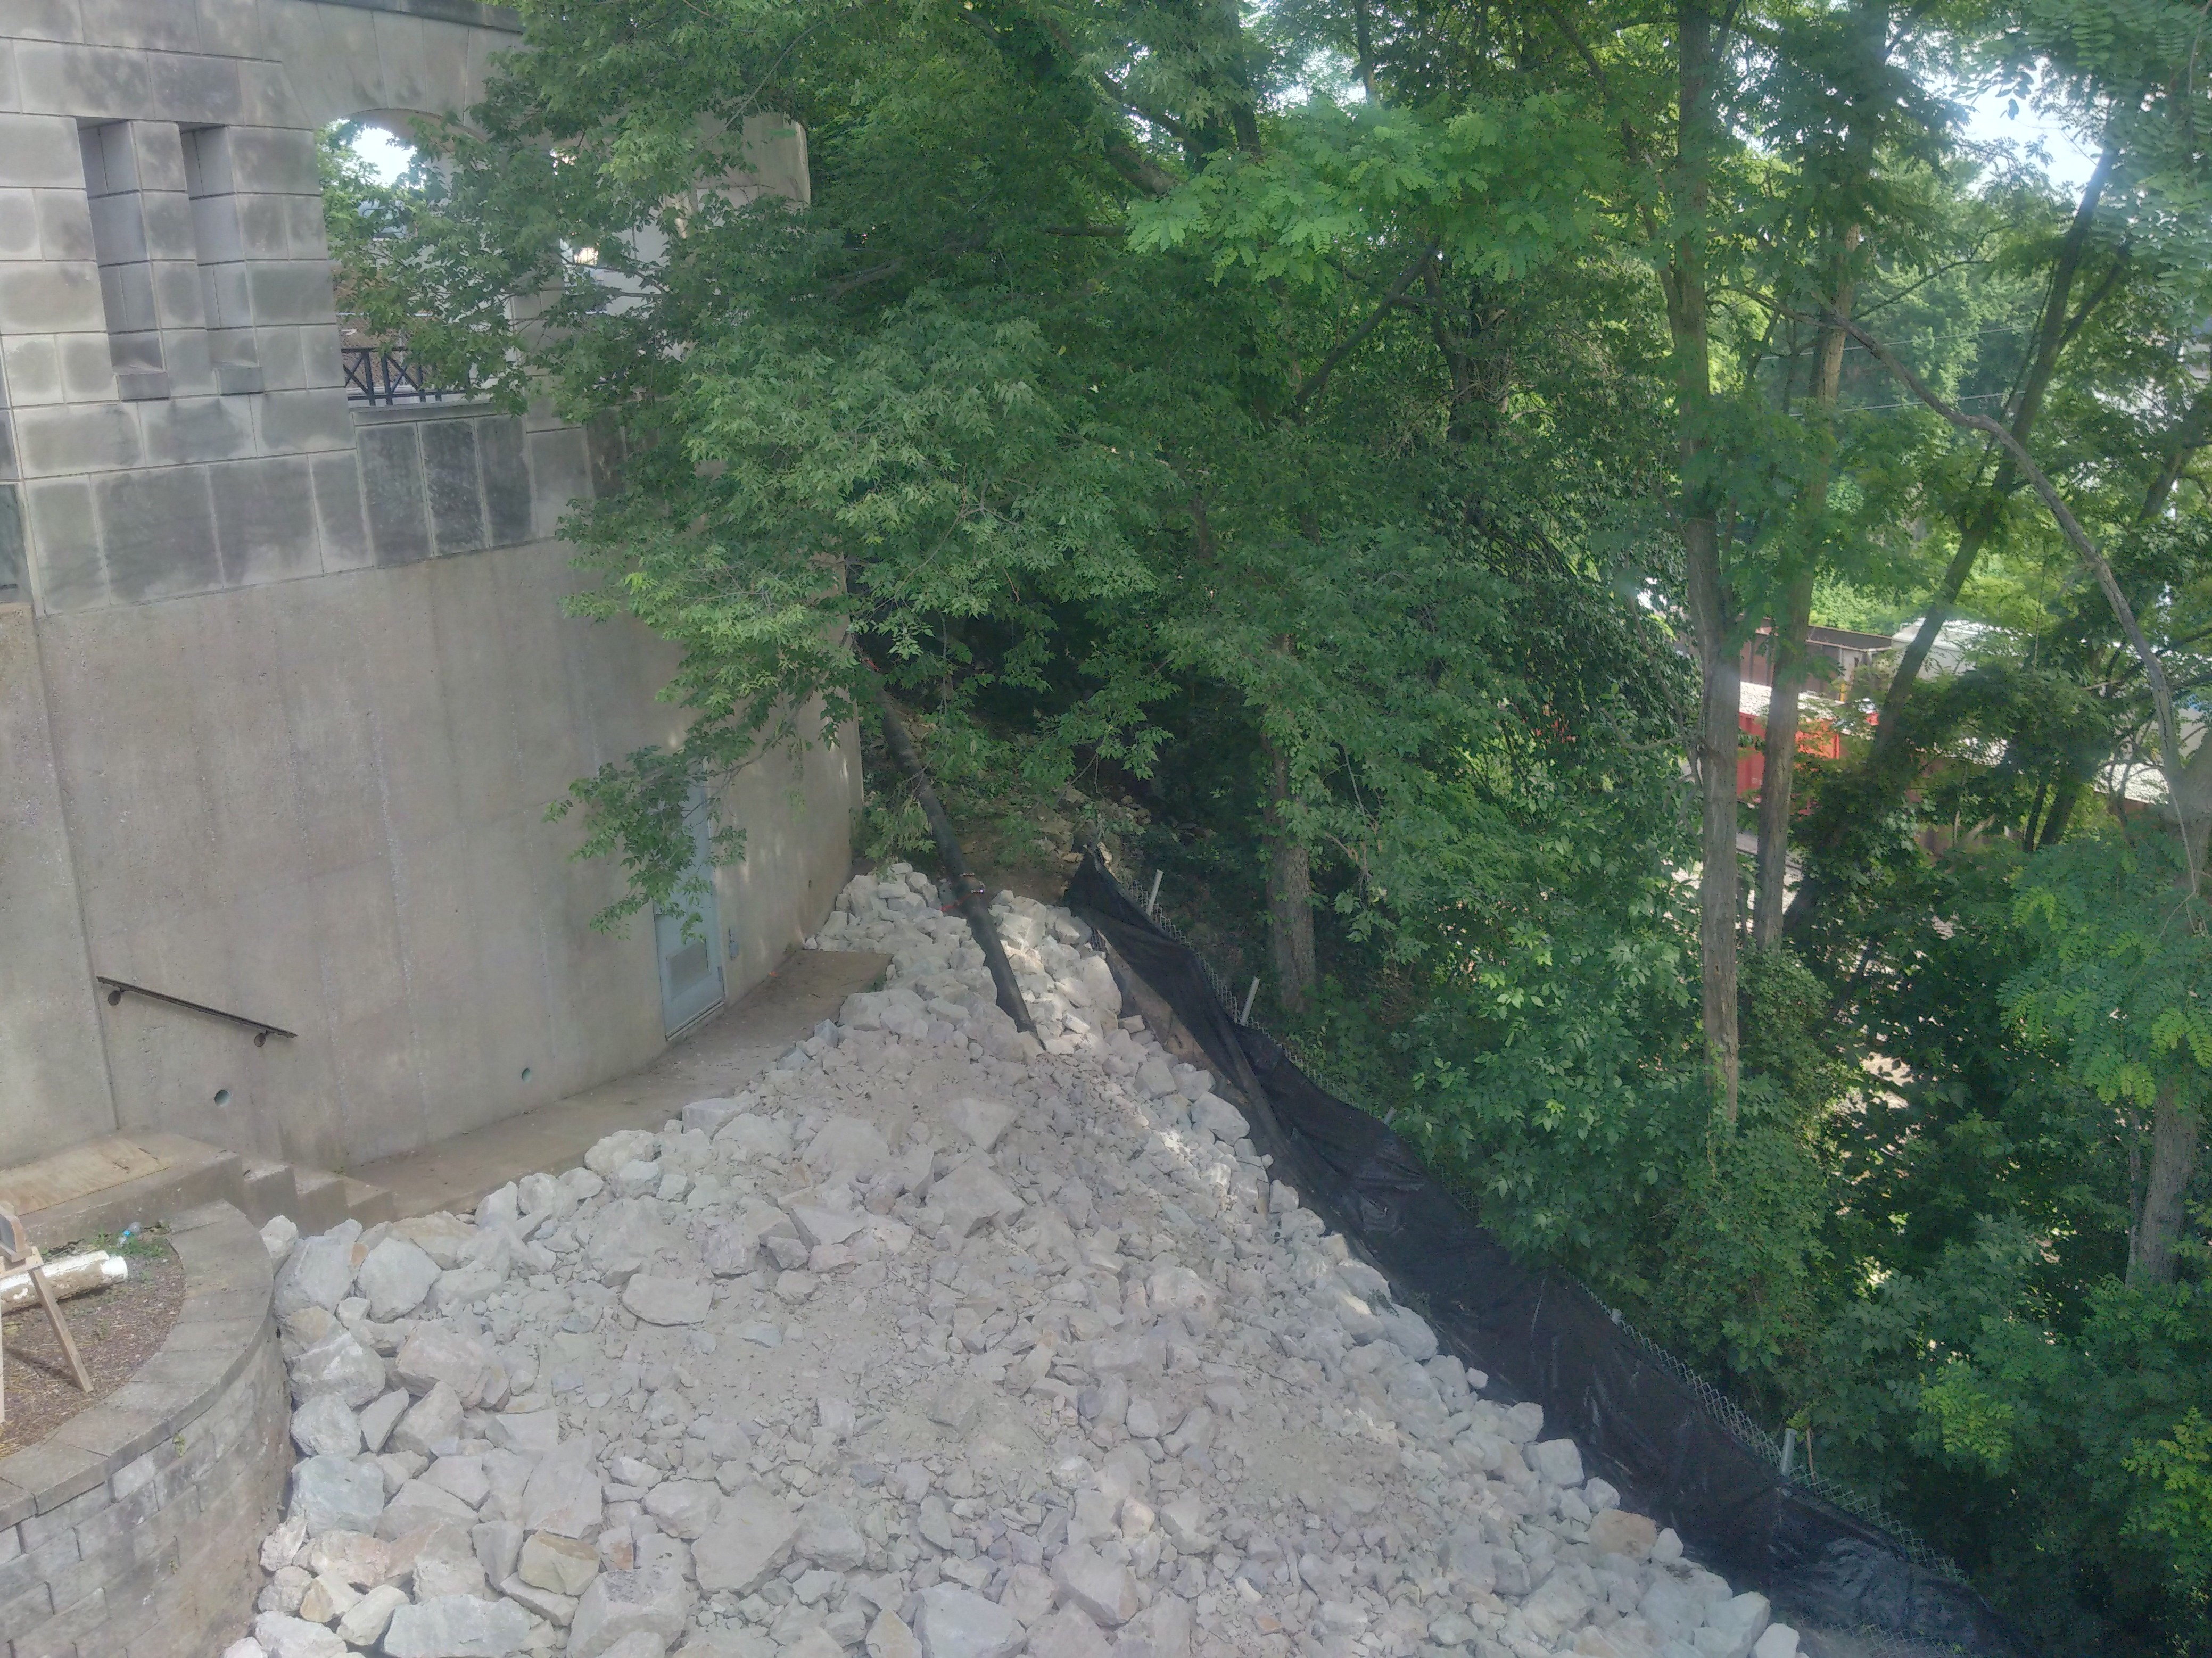 Erosion Control Behind Veterans Memorial - June 2018